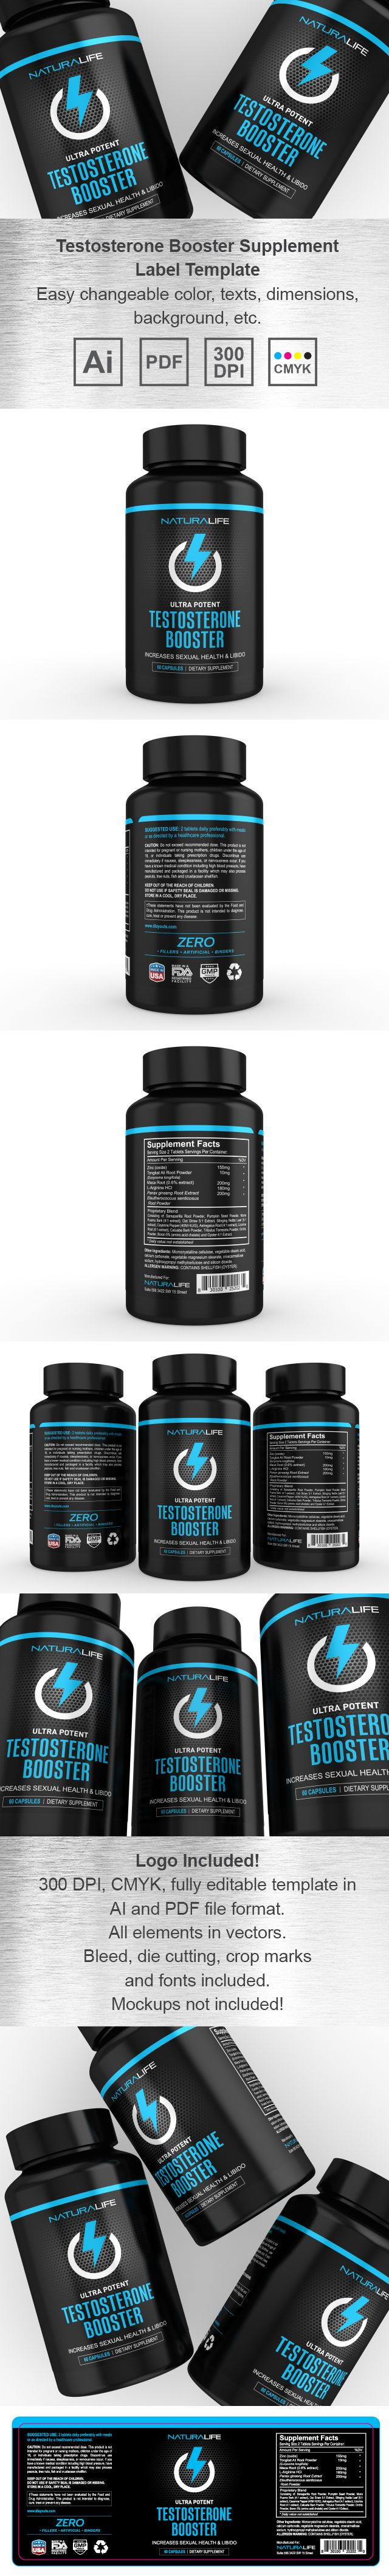 Testosterone Booster Supplement Label Template HttpWwwDlayouts